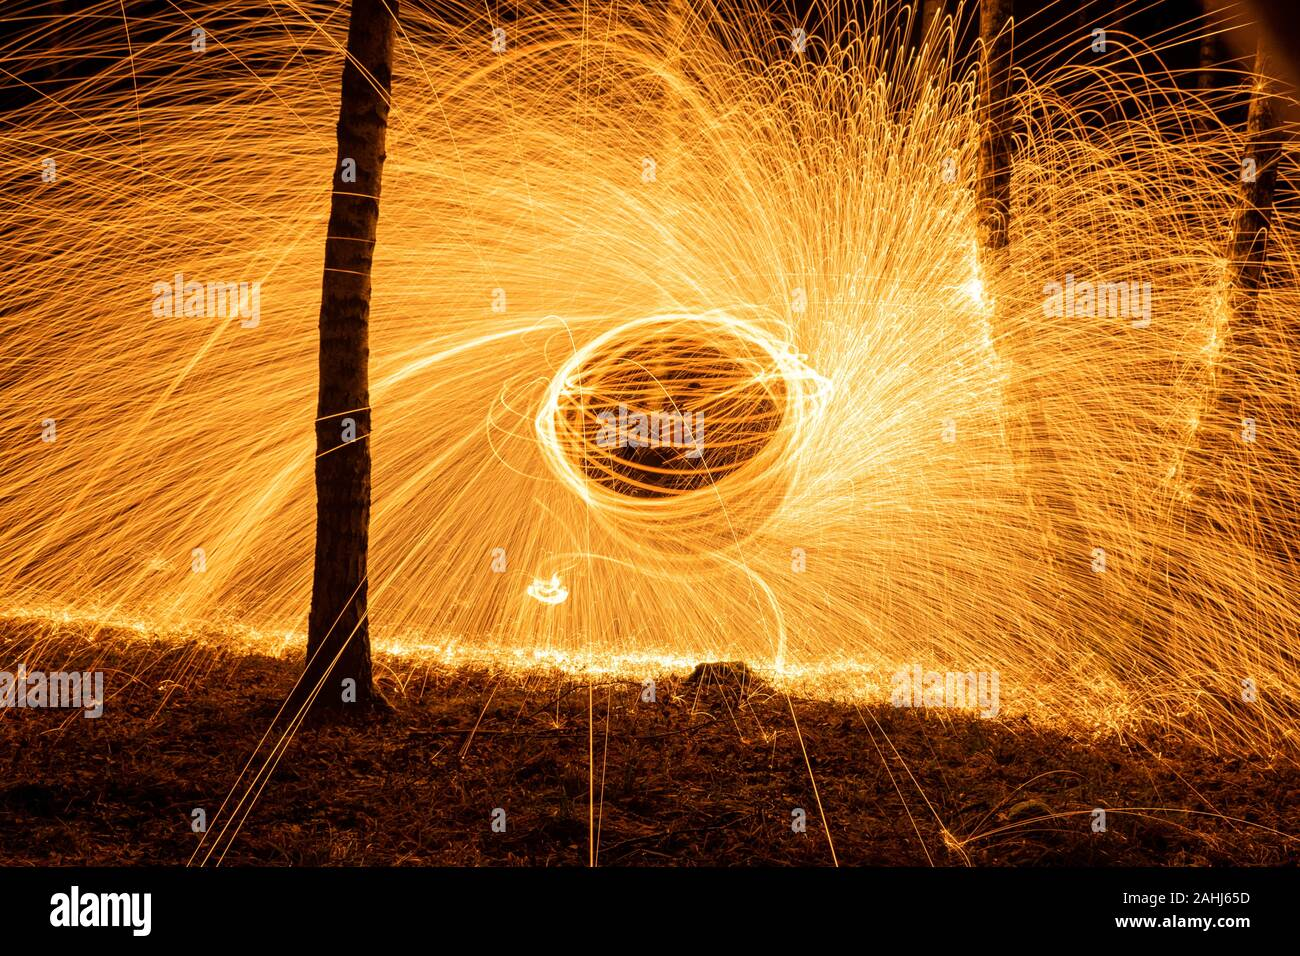 Fire circle spinning from steel wool creating spiral spark, Steel wool spinning fire circle spinning from steel wool creating spiral spark, birch grov Stock Photo